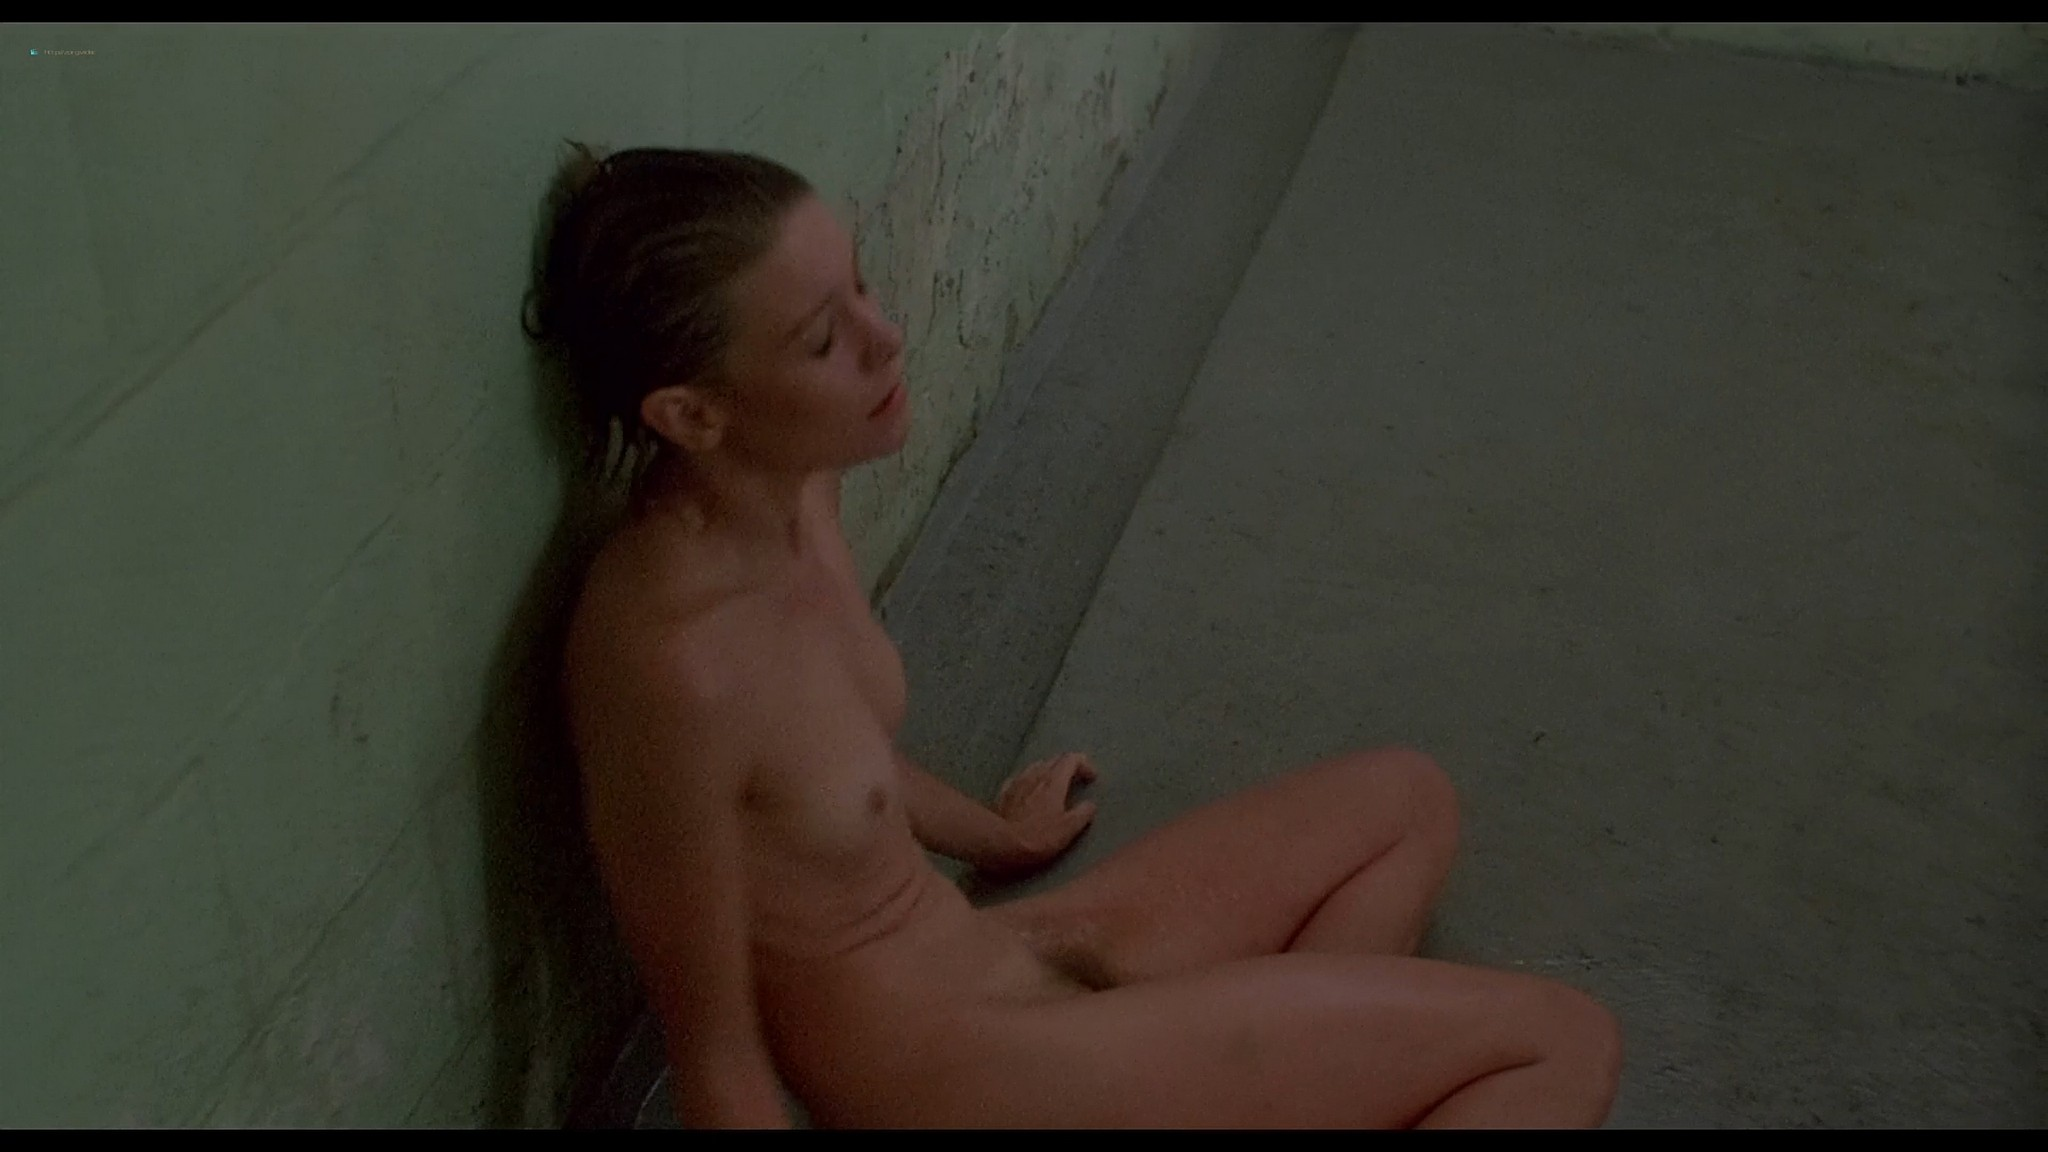 Shari Shattuck nude in shower Lisa London and others nude The Naked Cage 1986 HD 1080p BluRay 19